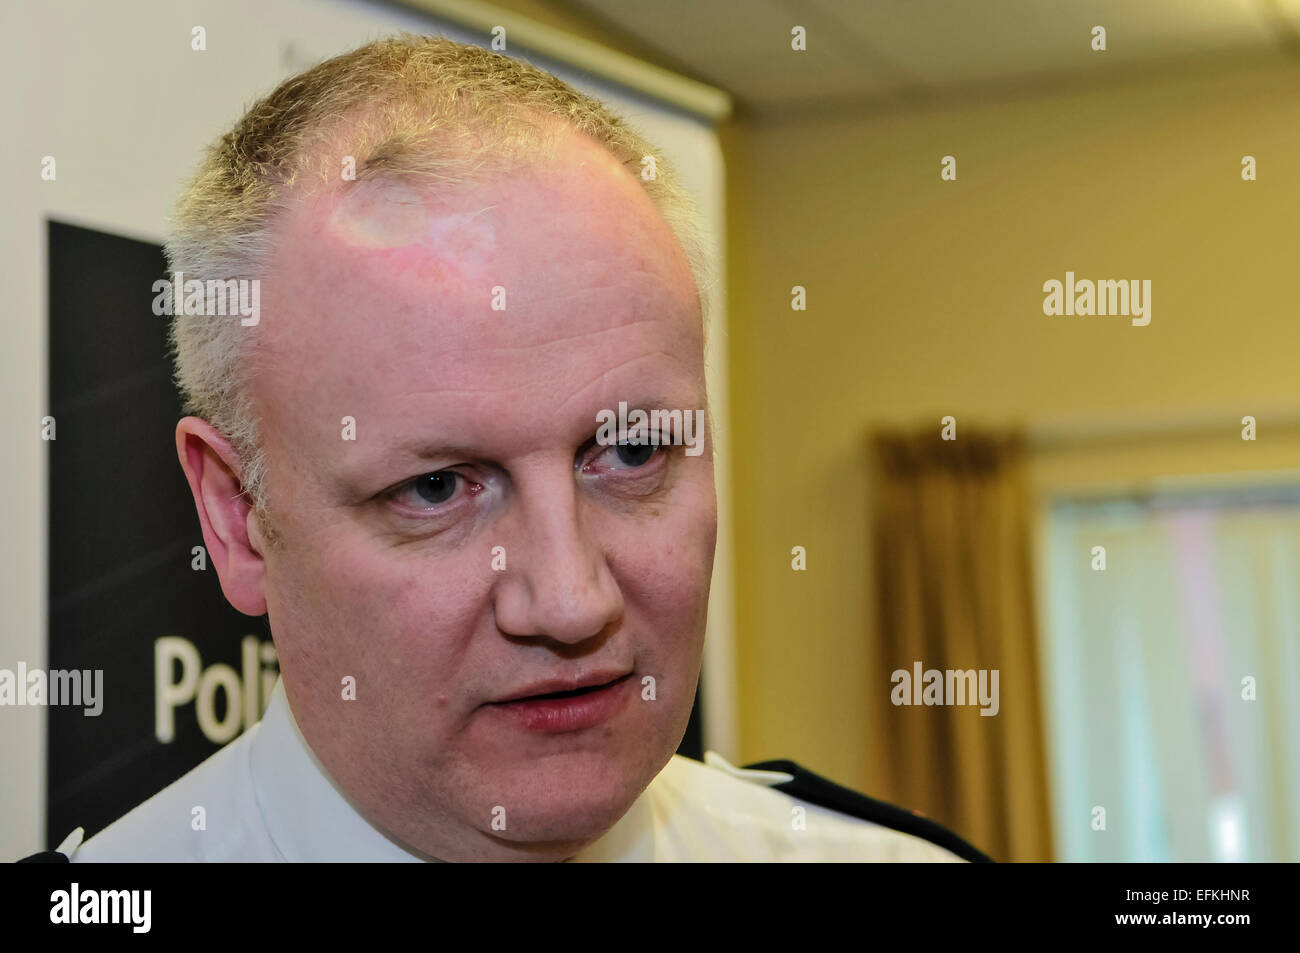 Belfast, Northern Ireland. 06 Feb 2015 - Chief Superintendent Nigel Grimshaw from the PSNI holds a press conference - Stock Image